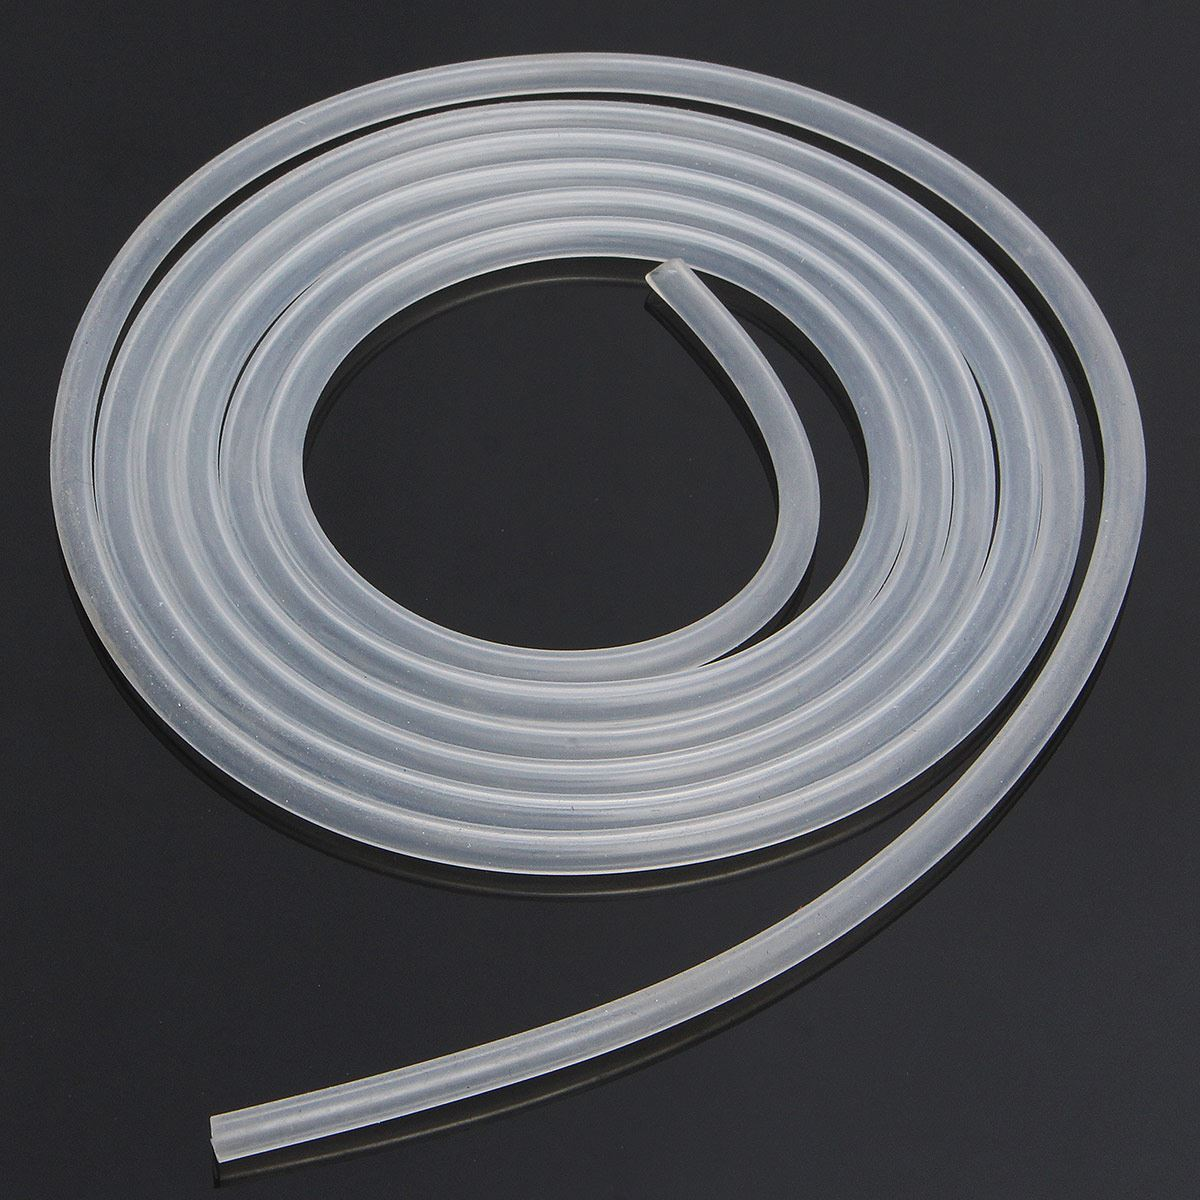 2 meters/lot 3mm*5mm High and low temperature resistance tasteless non-toxic Clear Food Grade Silicone Hose Tube Pipe(China (Mainland))